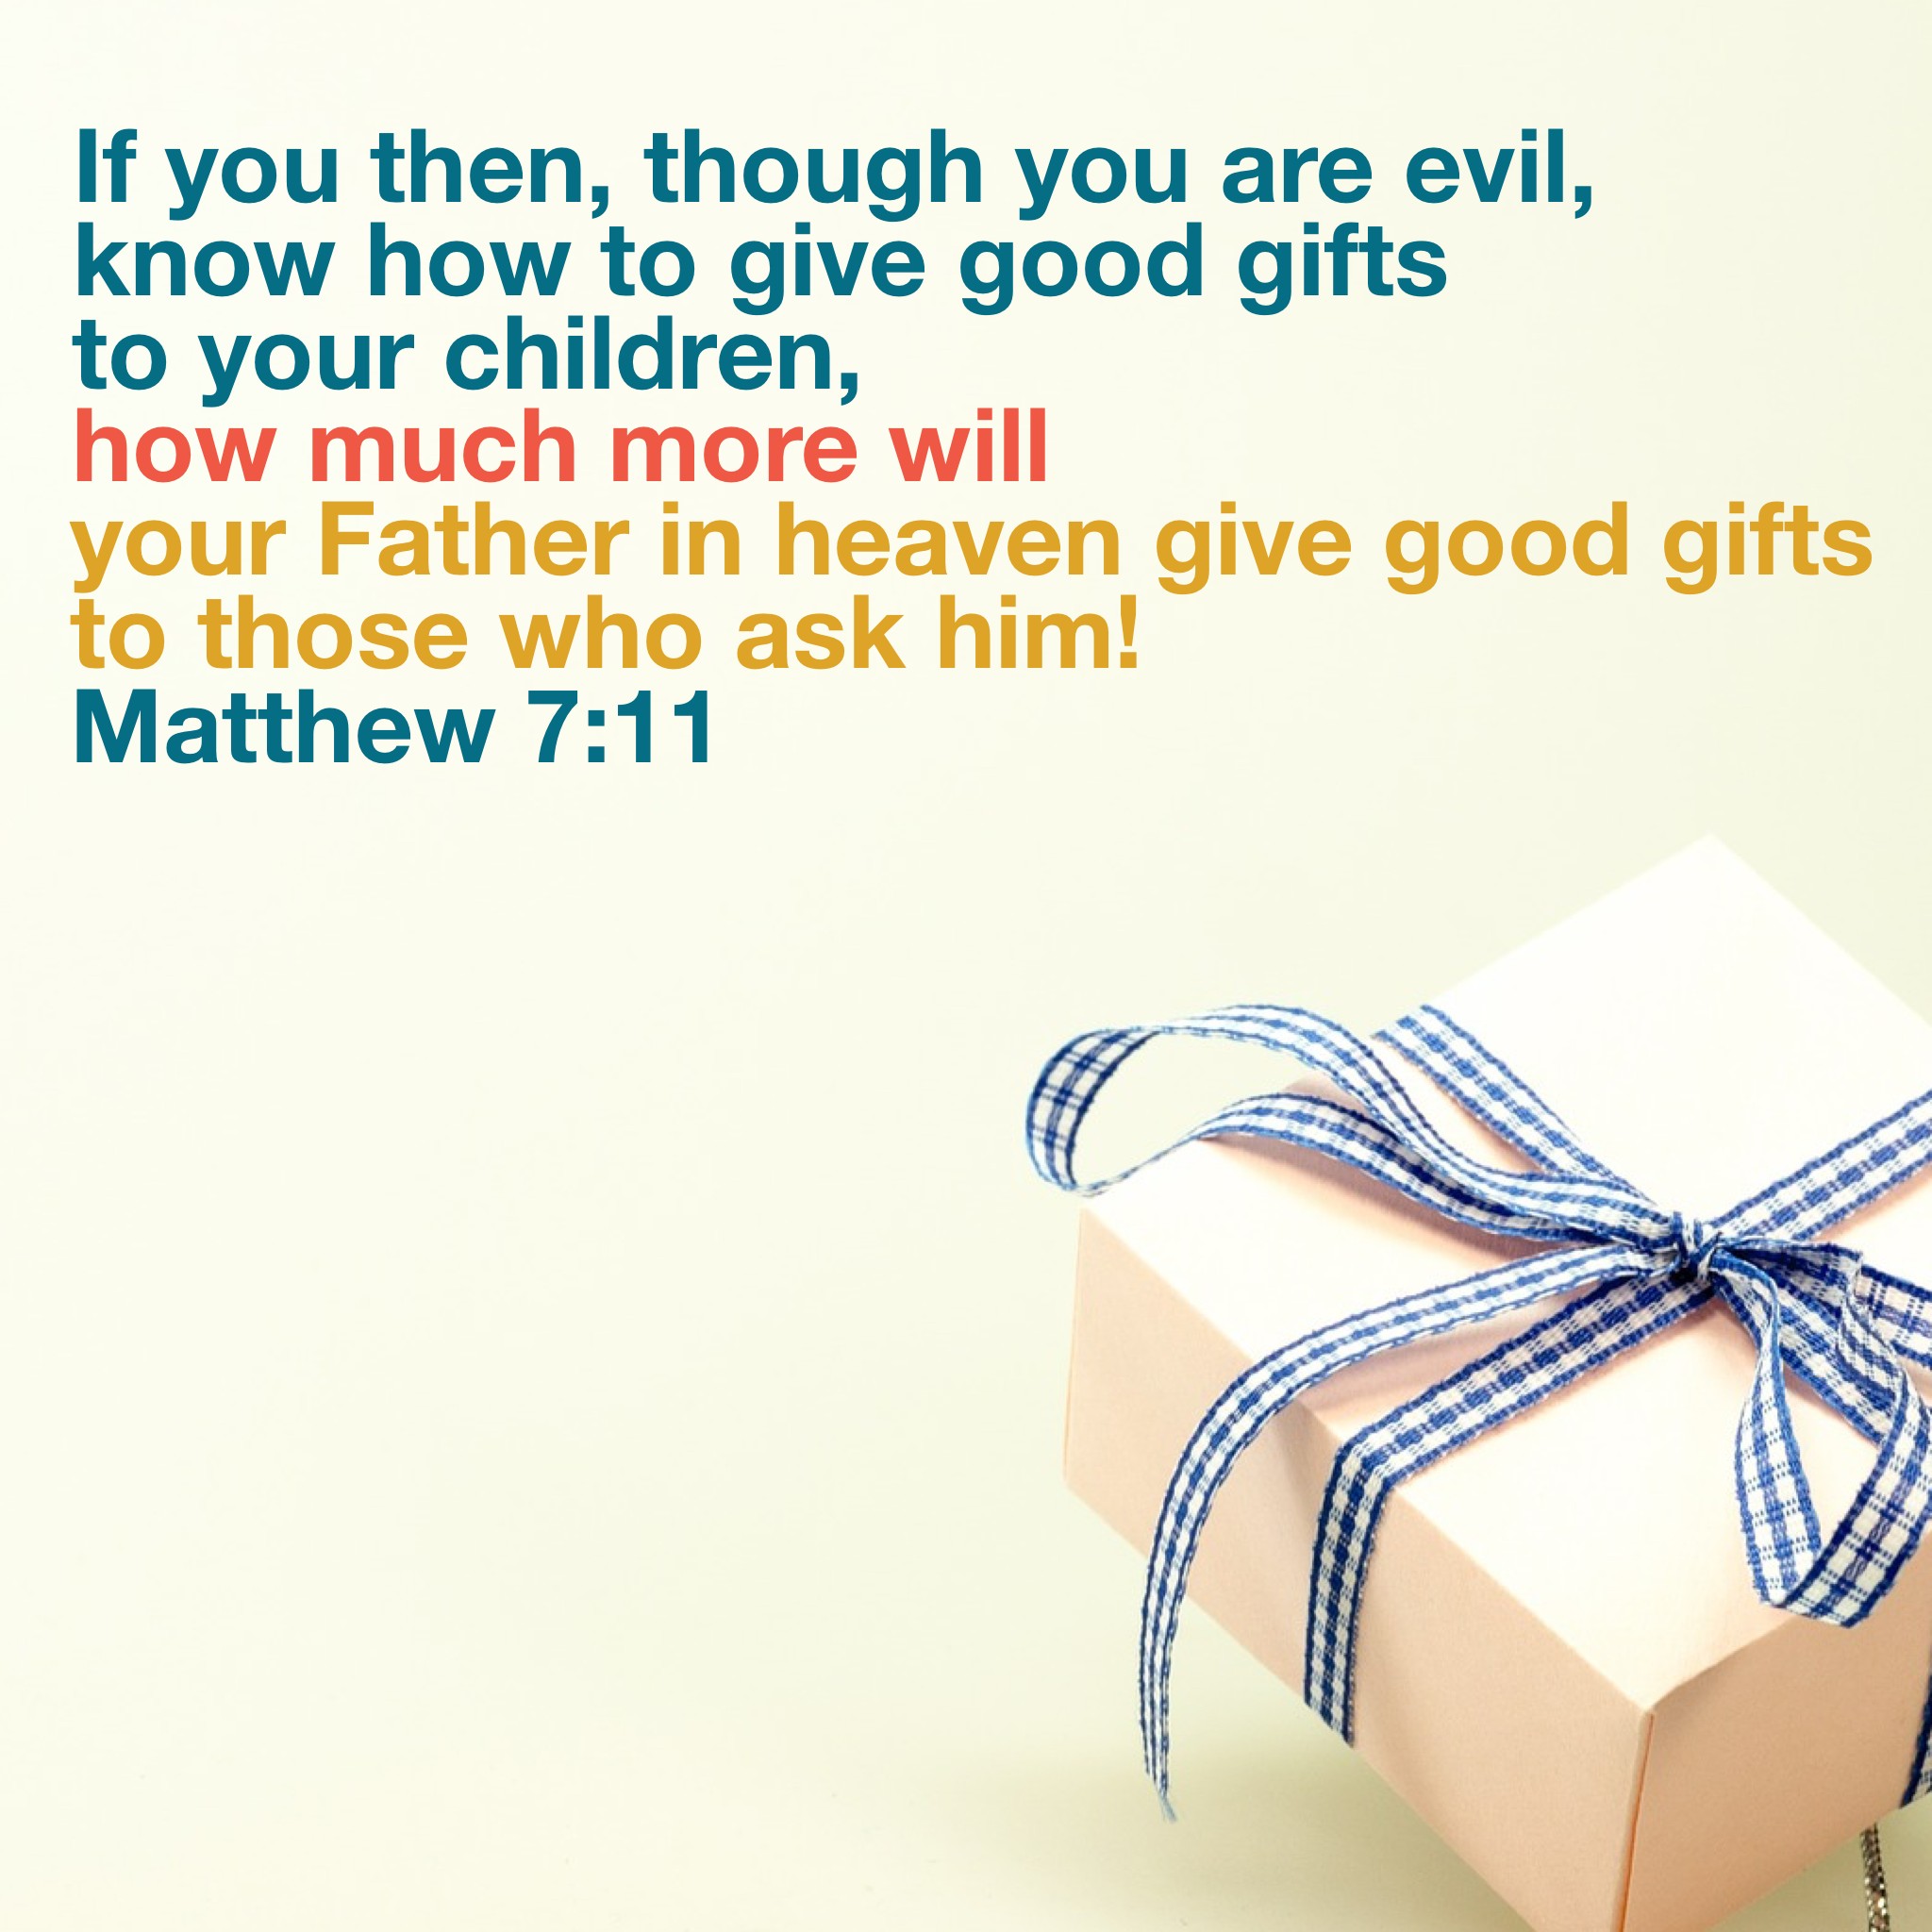 Do you know how to give gifts